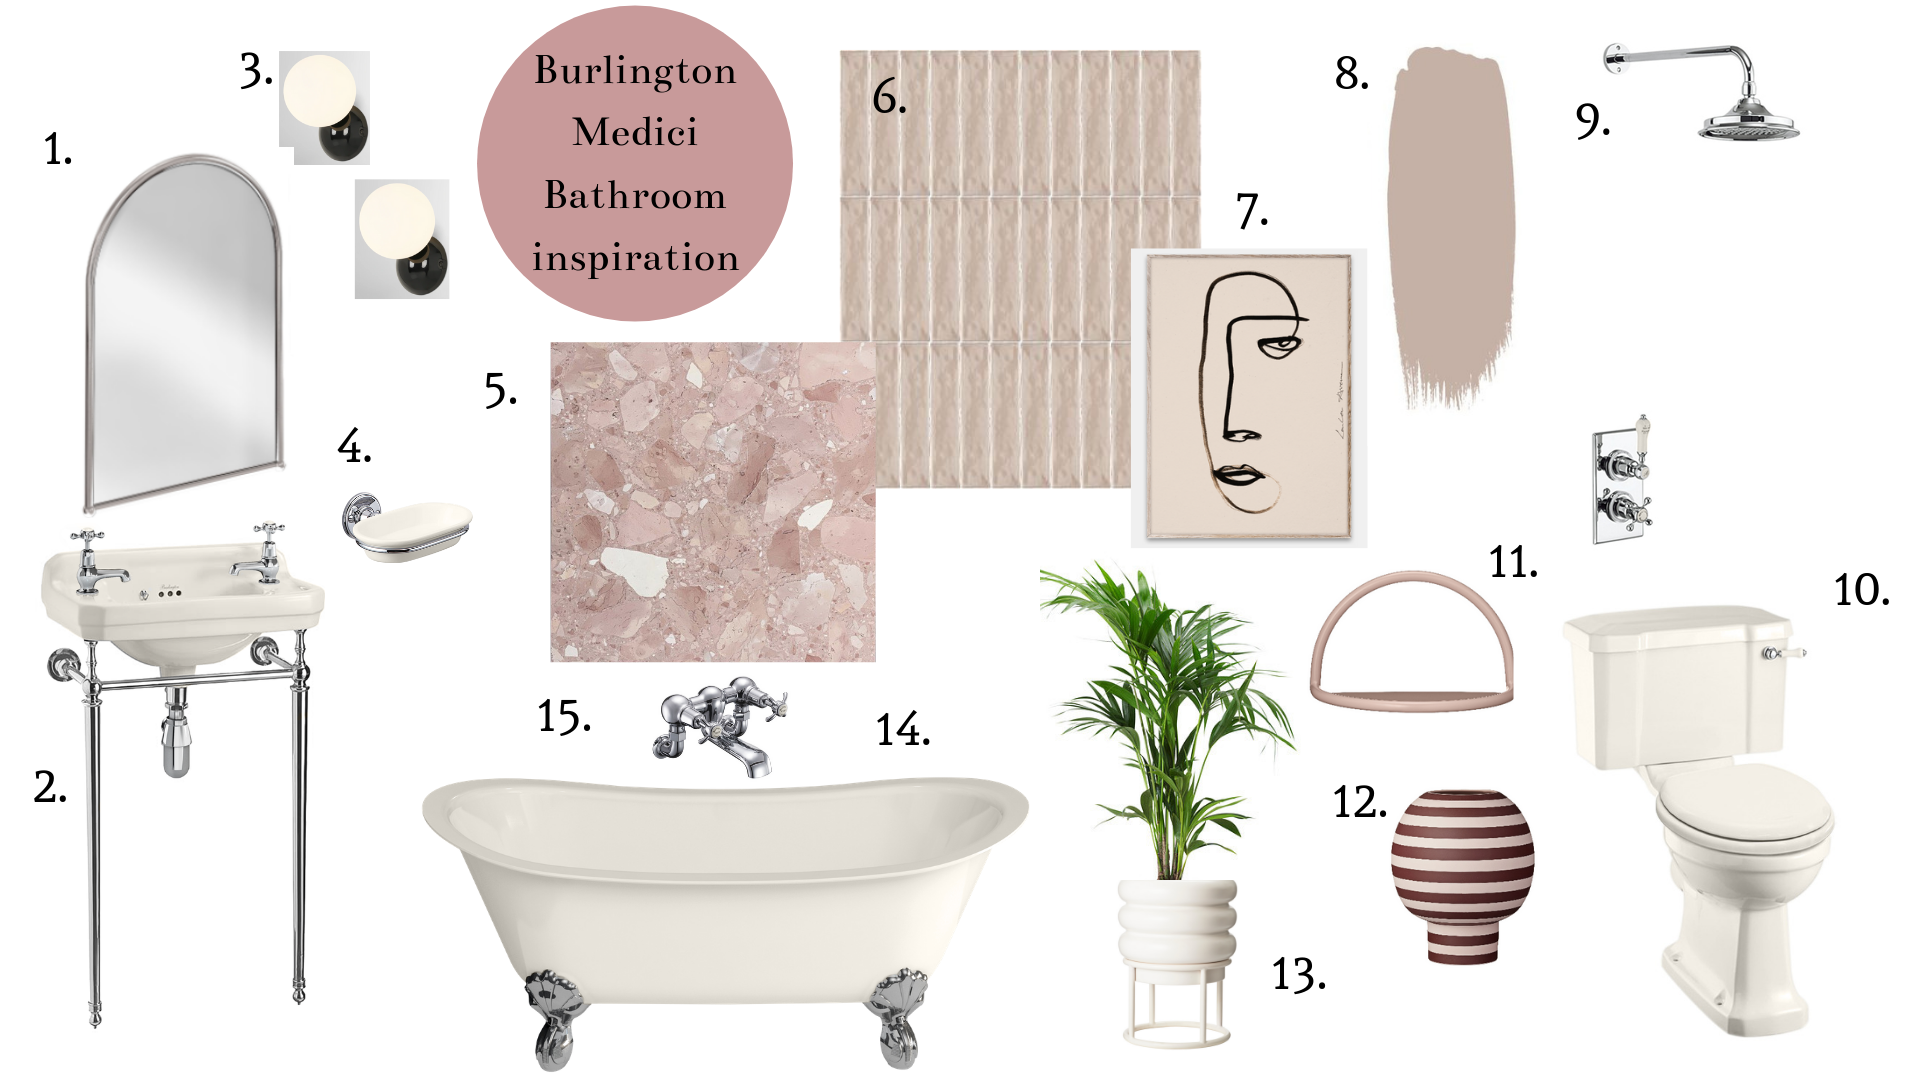 Copy of Burlington bathroom inspo holding 3 (1).png